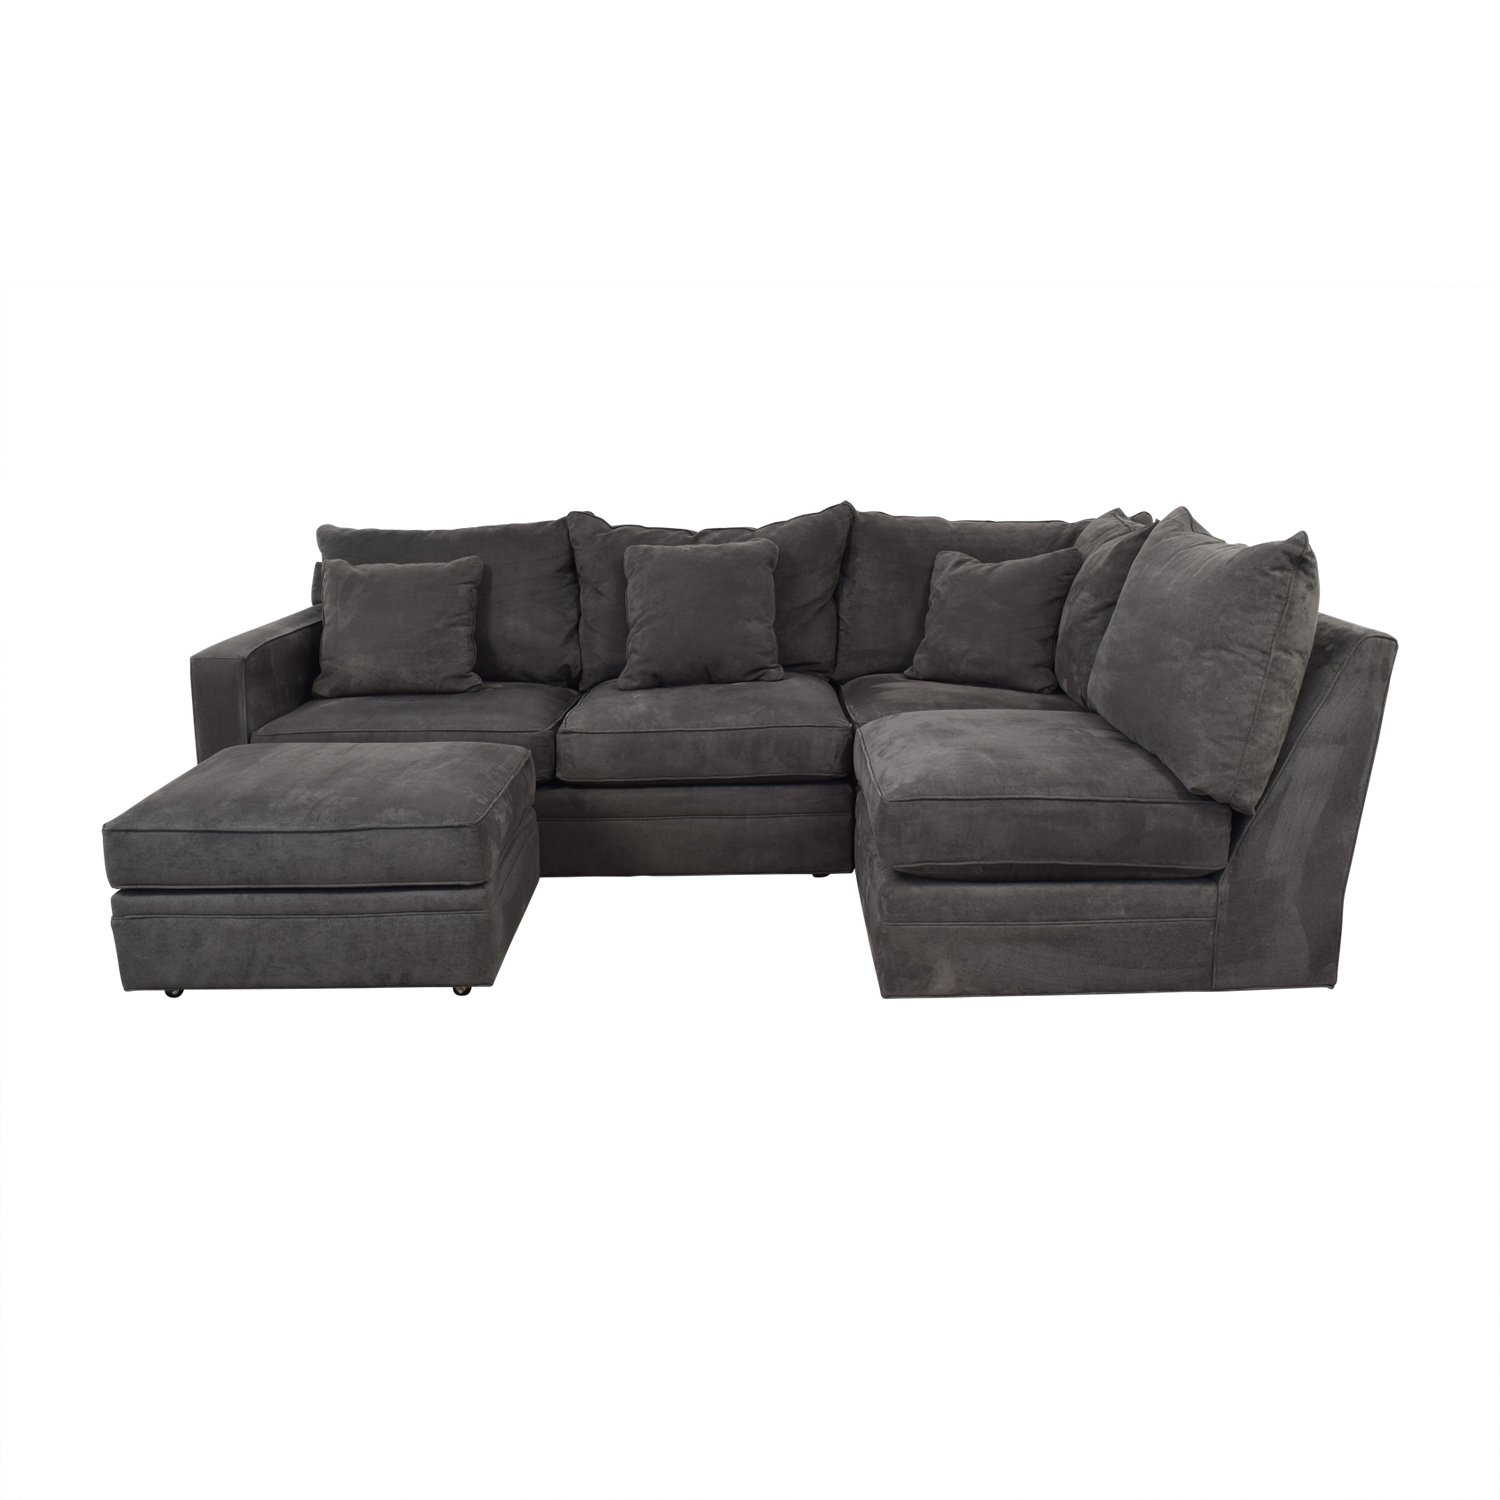 shop Room & Board Orson Grey L-Shaped Sectional with Ottoman Room & Board Sofas